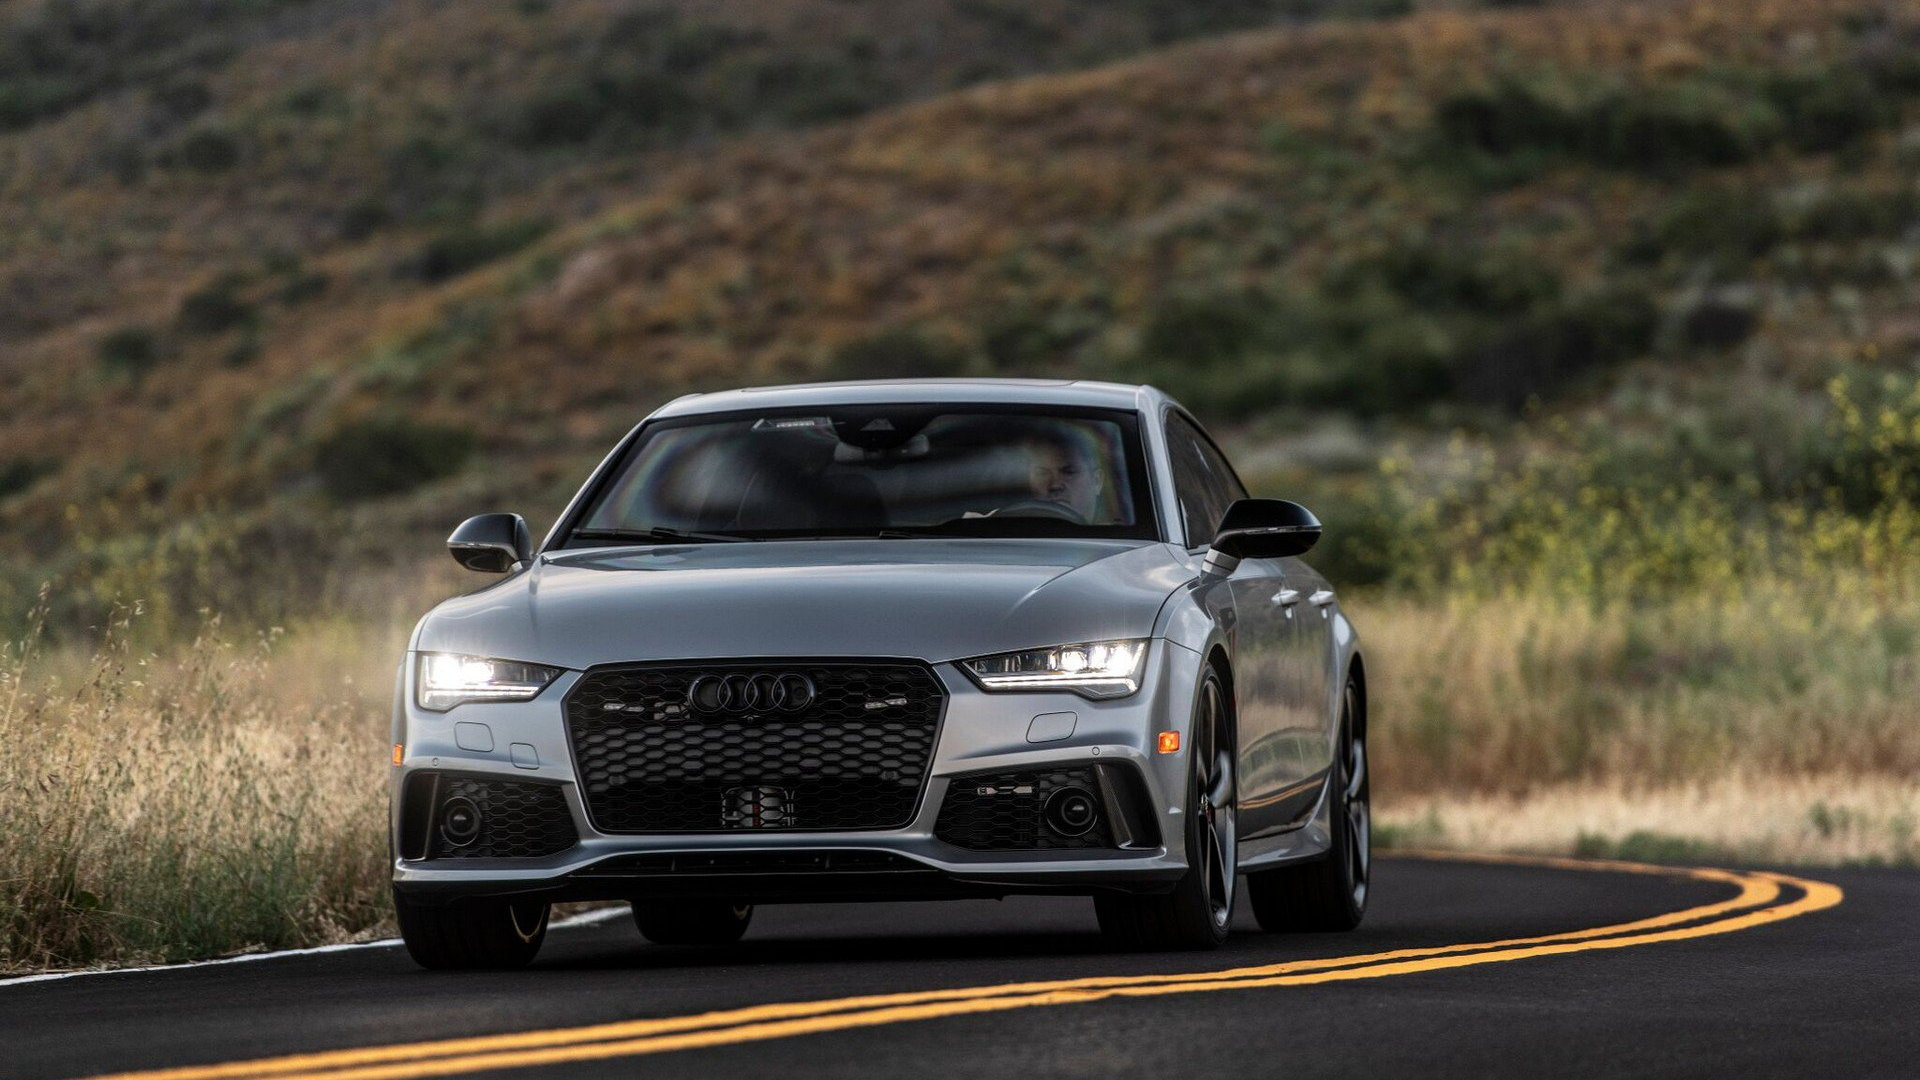 Armored Audi RS 7 by AddArmor